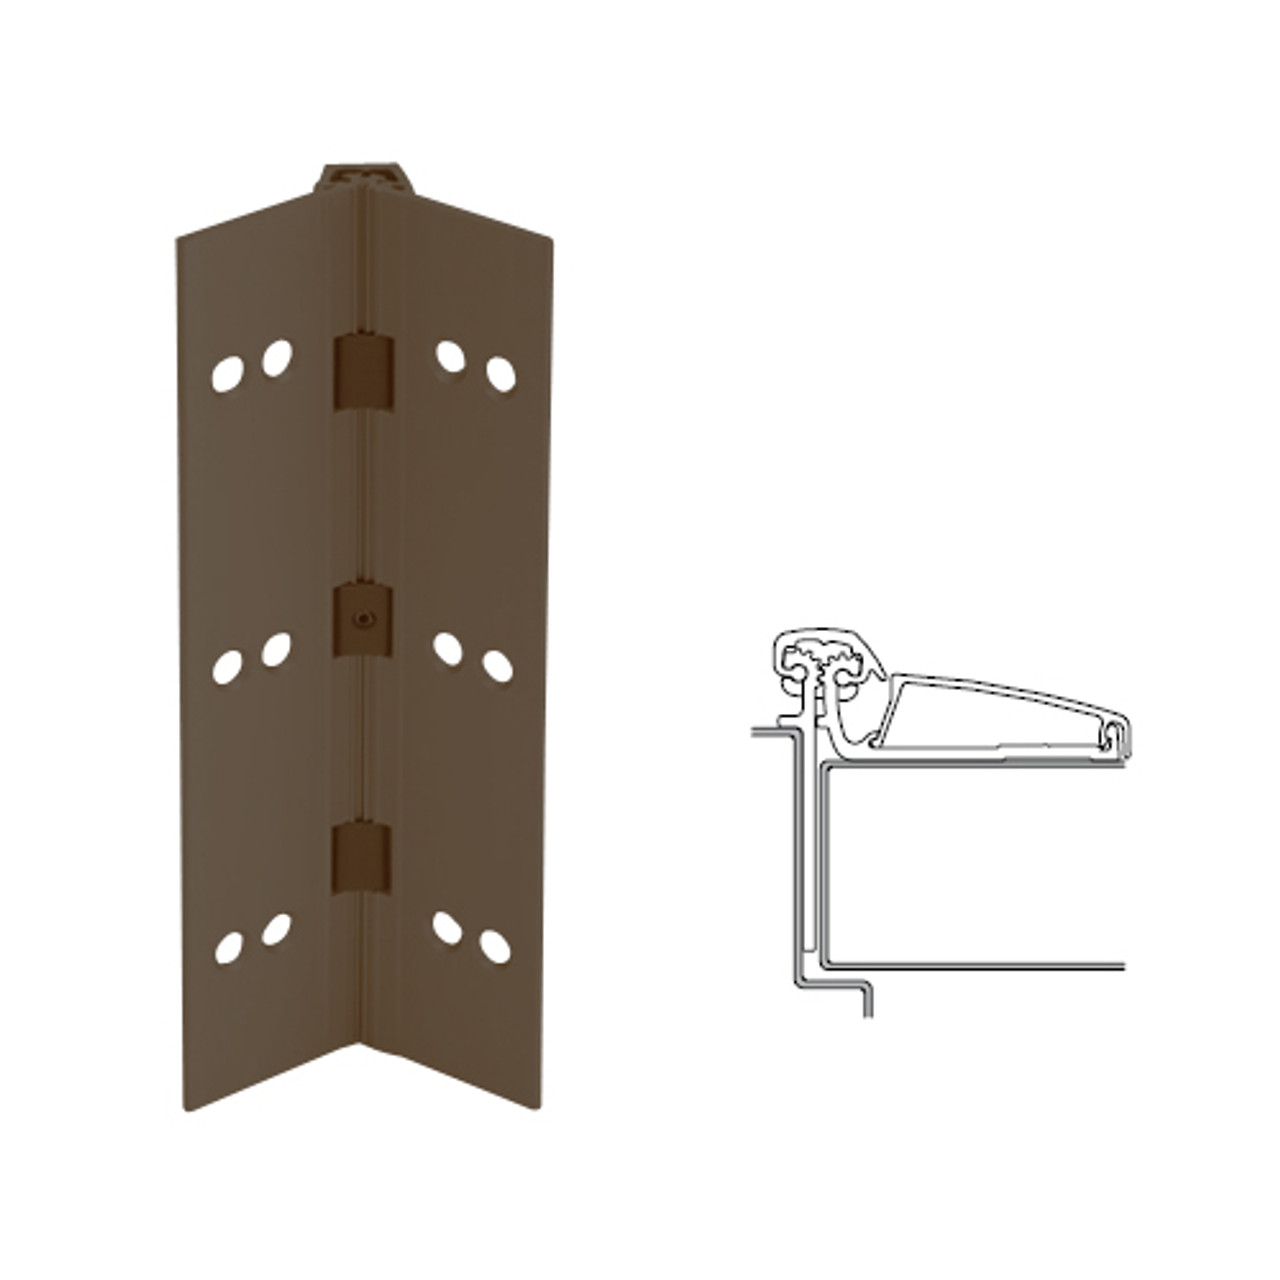 046XY-313AN-95-TFWD IVES Adjustable Half Surface Continuous Geared Hinges with Thread Forming Screws in Dark Bronze Anodized